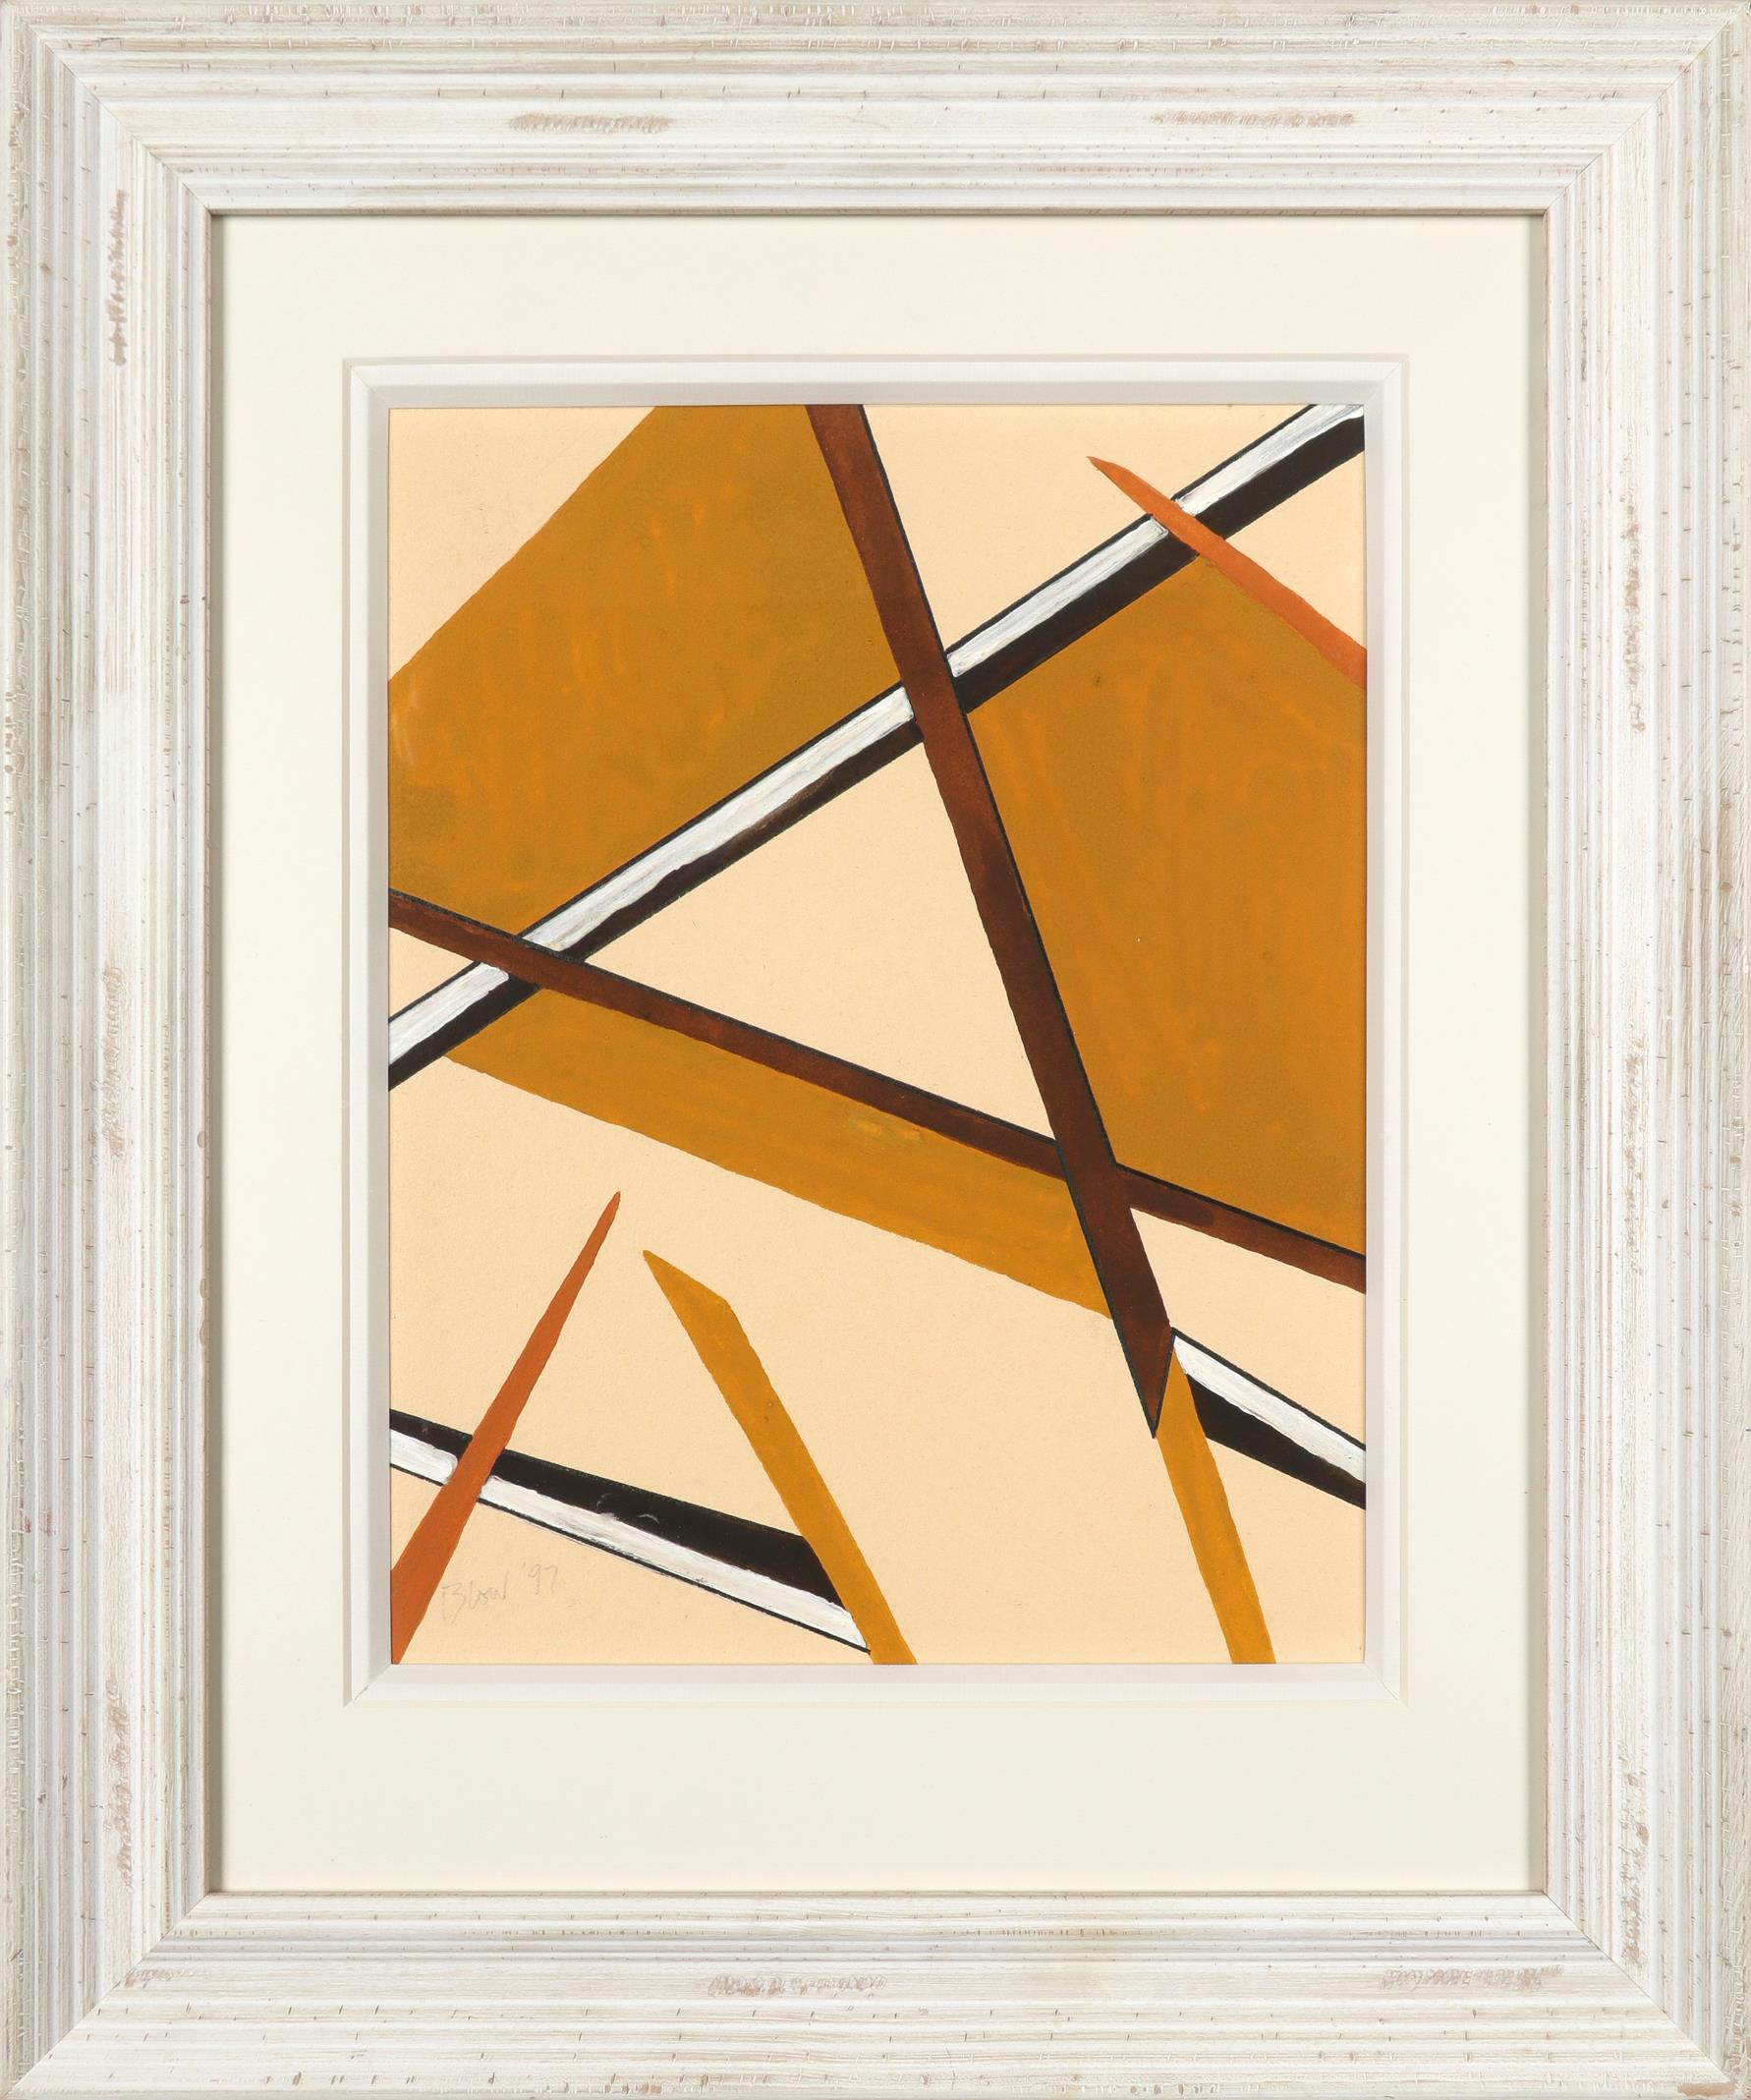 ‡Sandra Blow RA (1925-2006) Abstract in browns Signed and dated Blow '97 (lower left) Gouache 30.9 x - Image 2 of 3